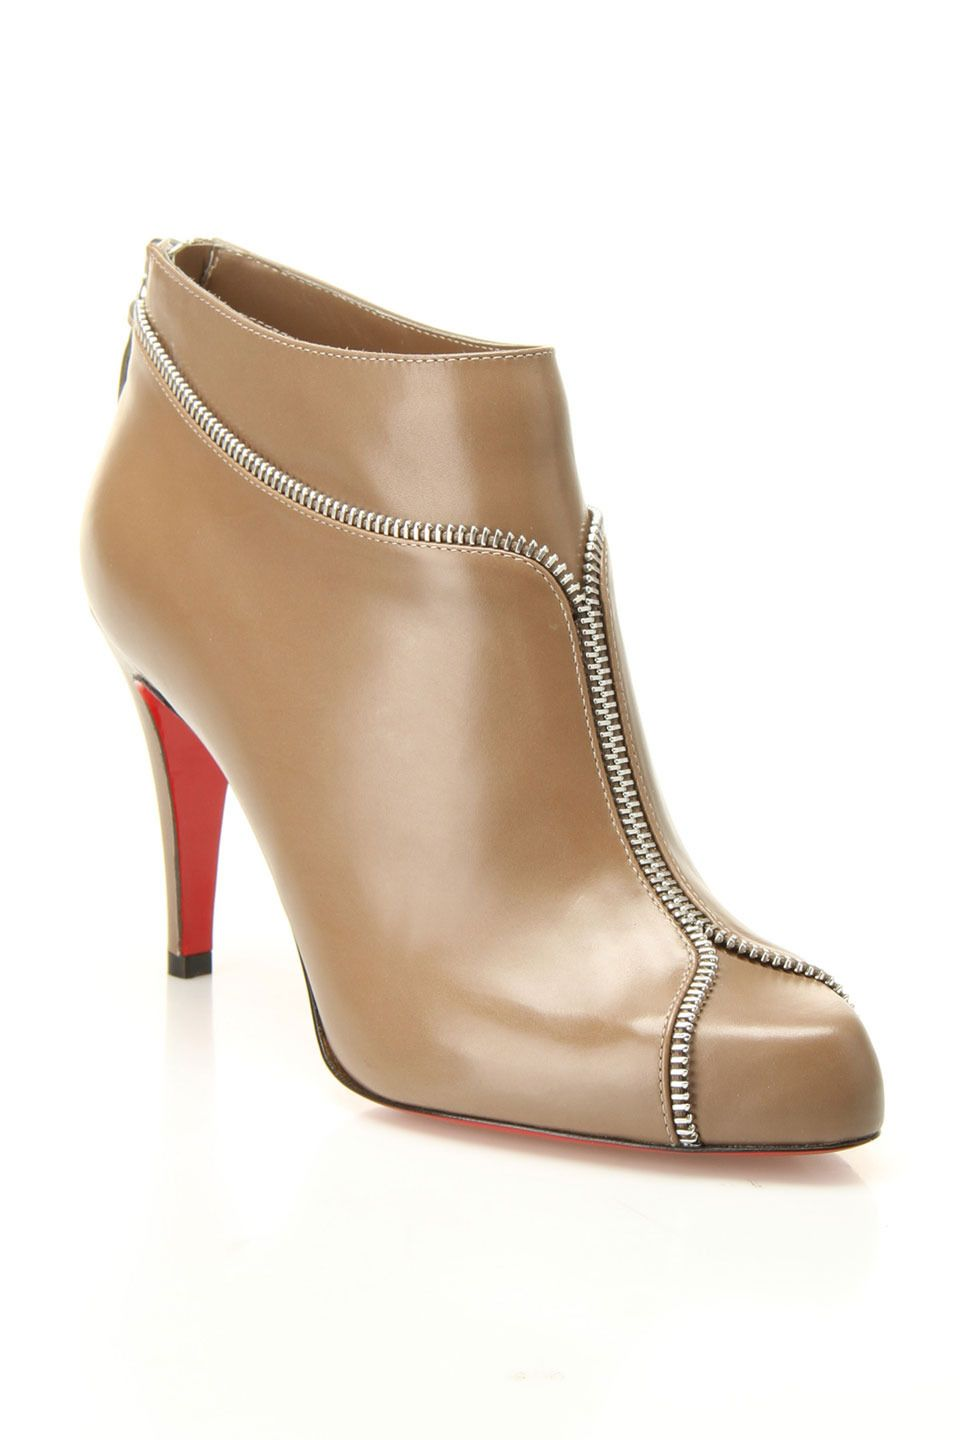 beyond the rack christian louboutin - 4Home